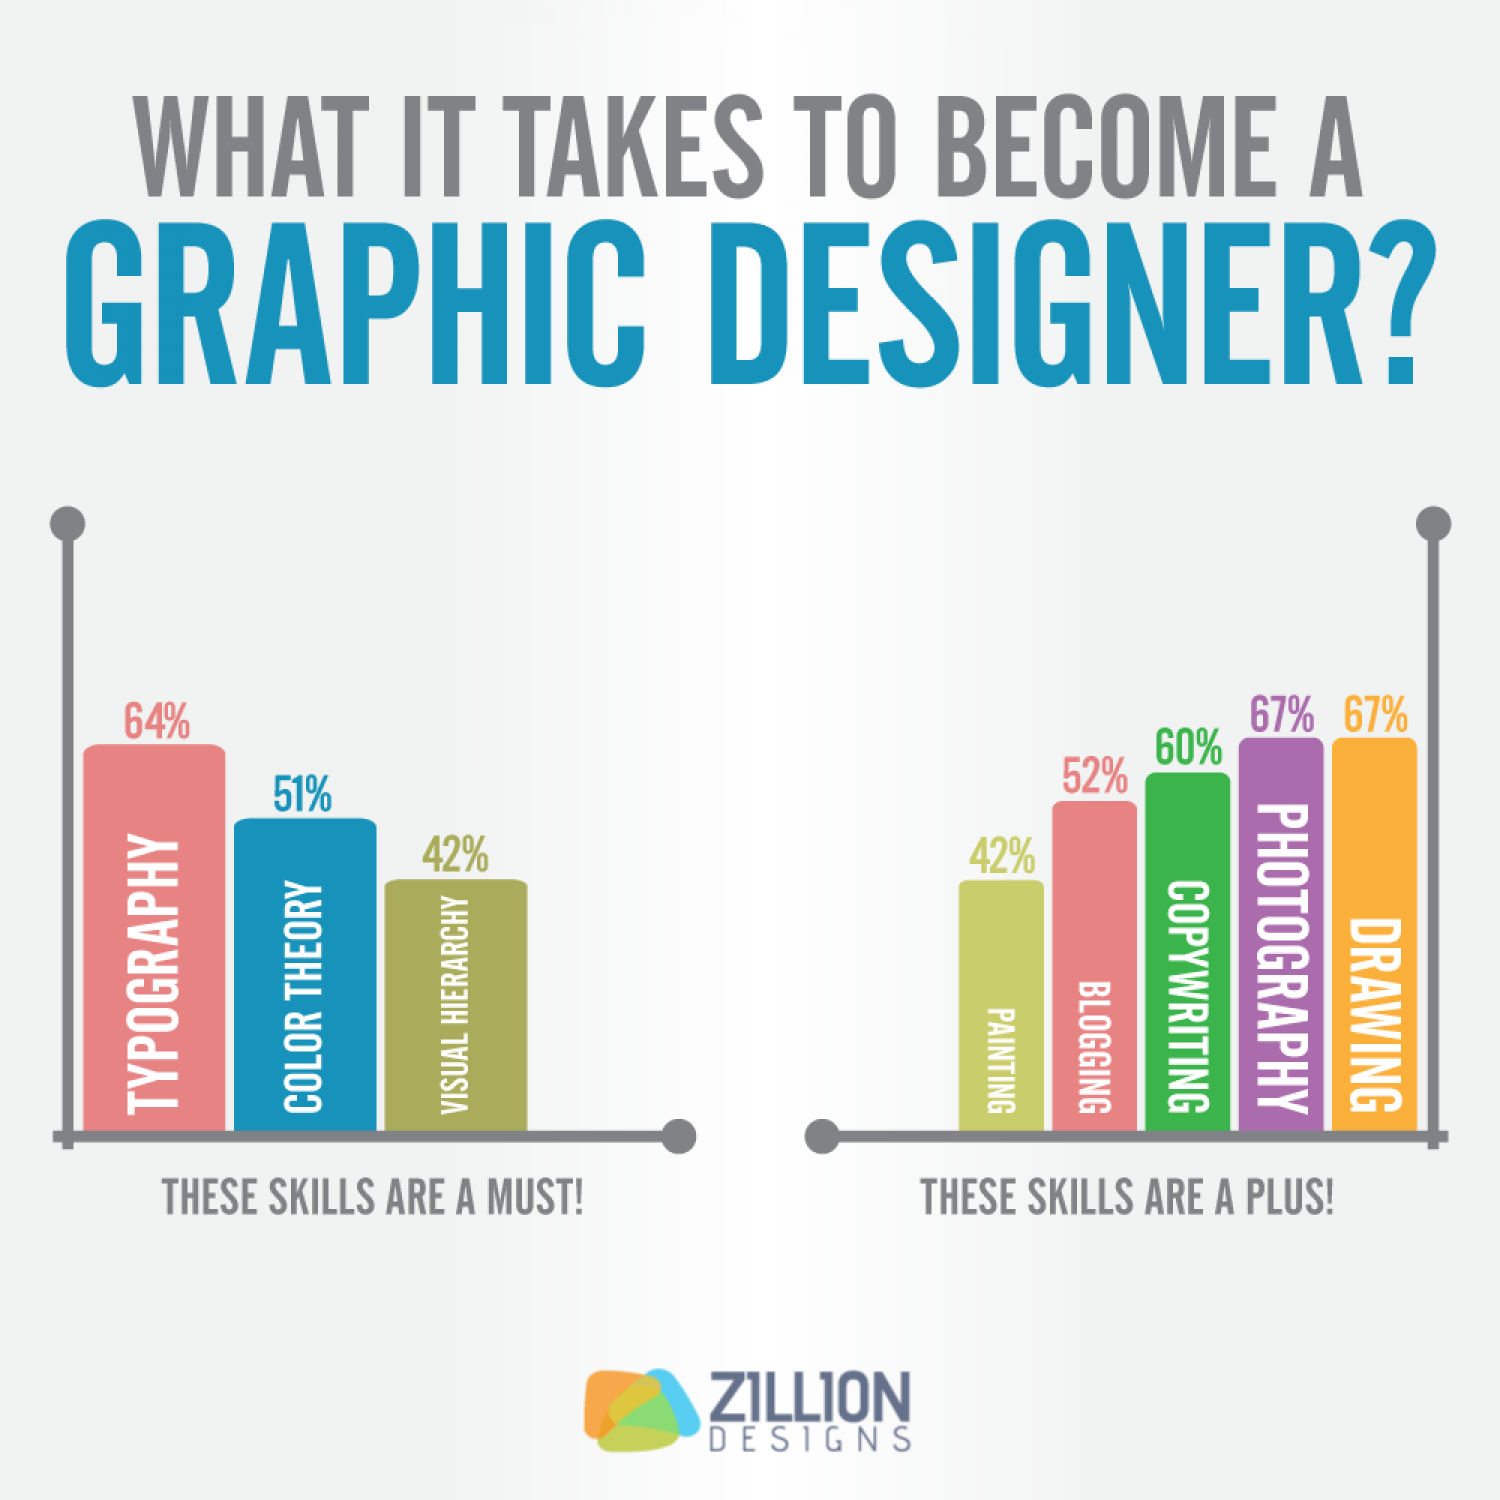 Qualifications To Become A Graphic Designer